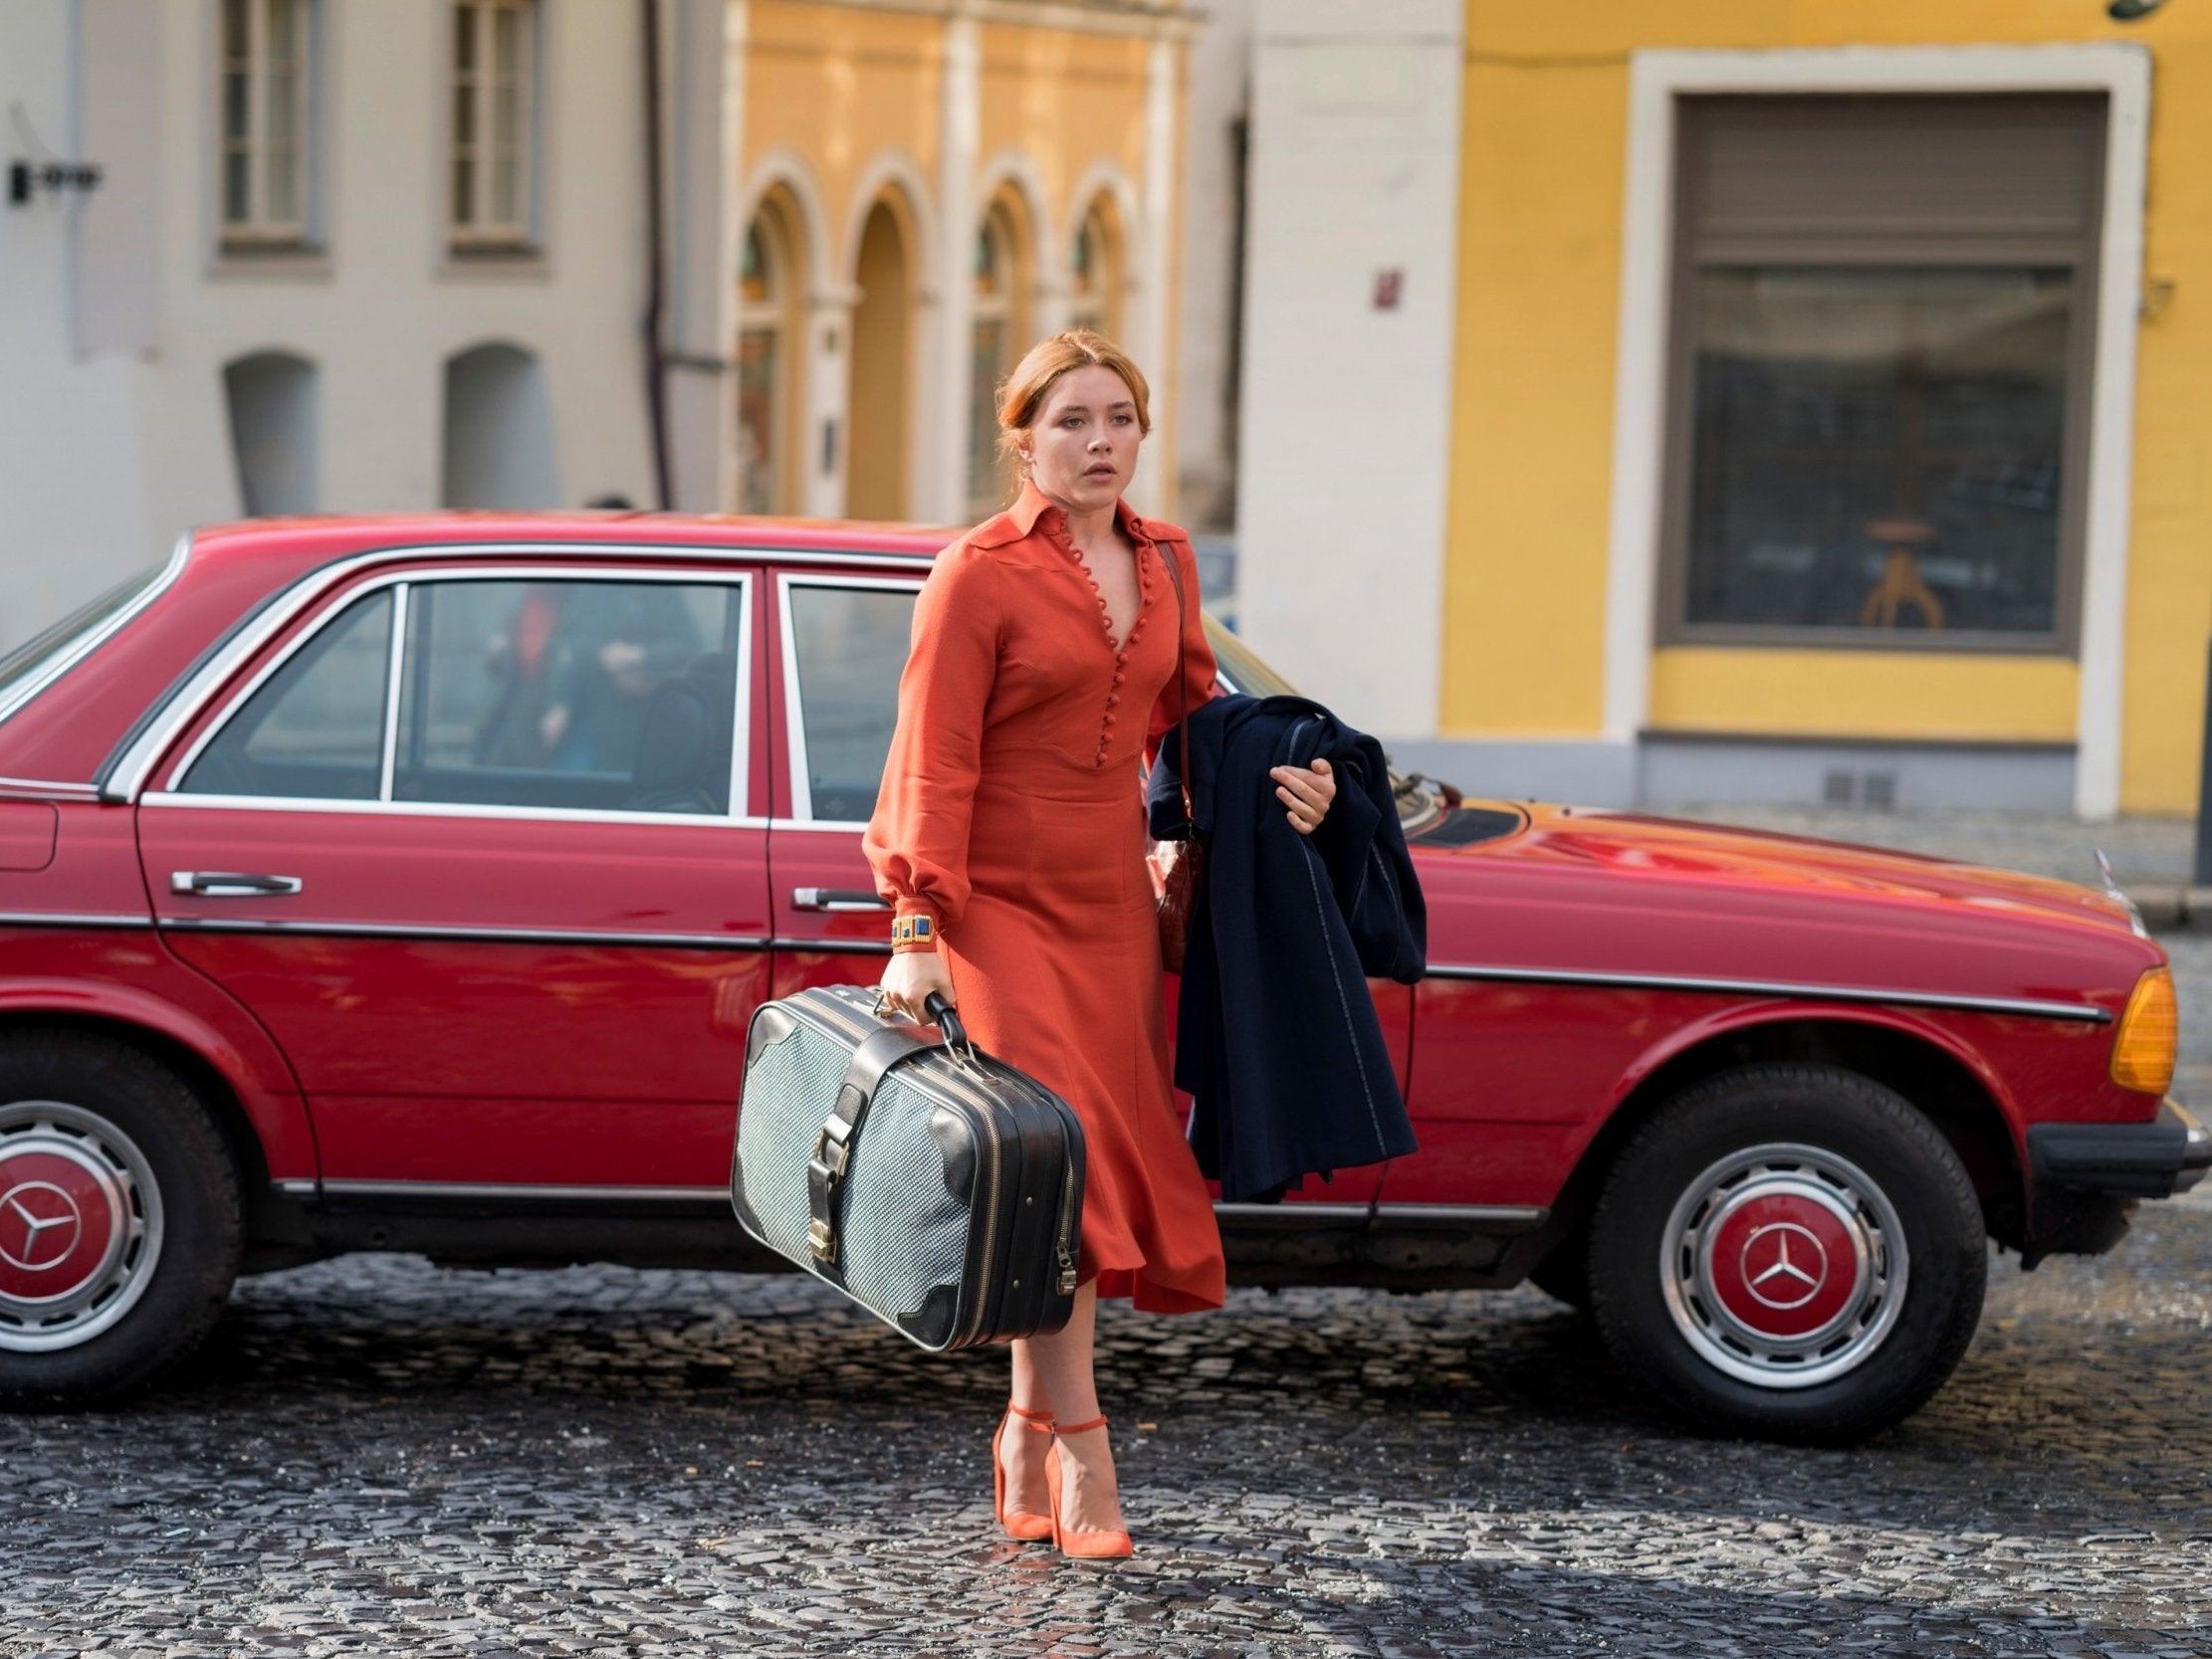 The Little Drummer Girl, episode 4, review: A damp squib